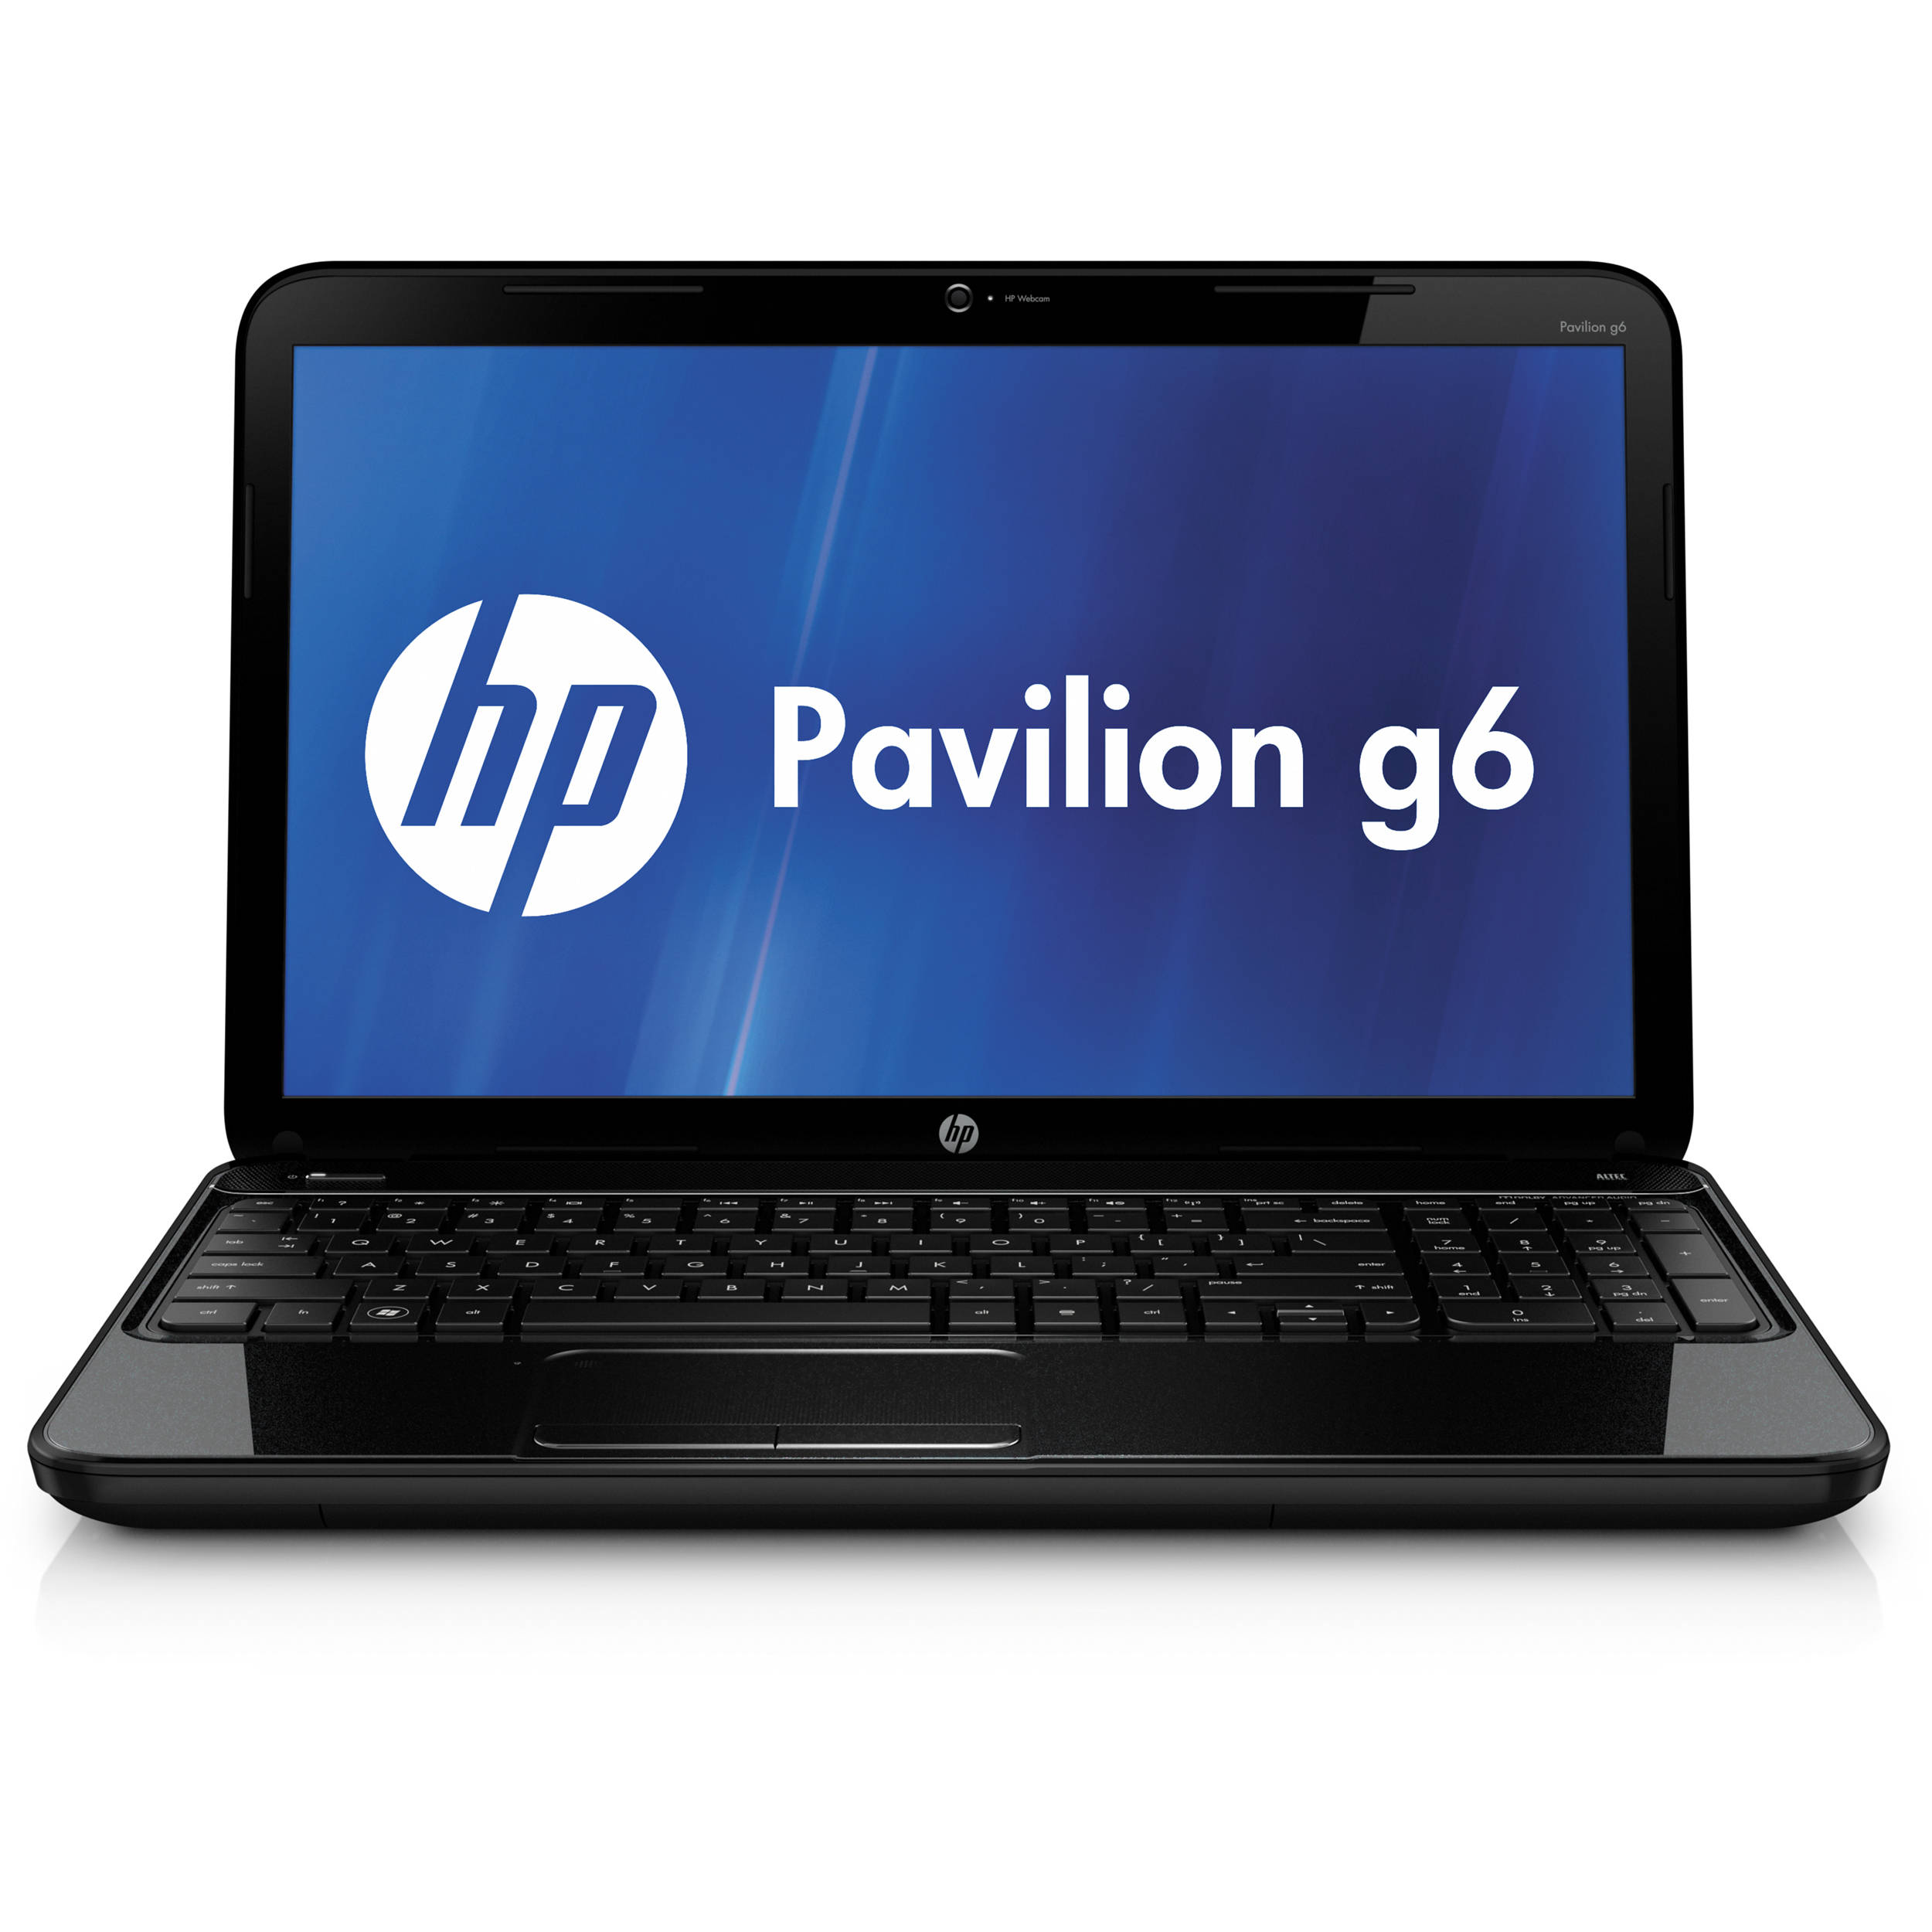 HP PAVILION G6 DOLBY ADVANCED AUDIO WINDOWS 8 X64 DRIVER DOWNLOAD